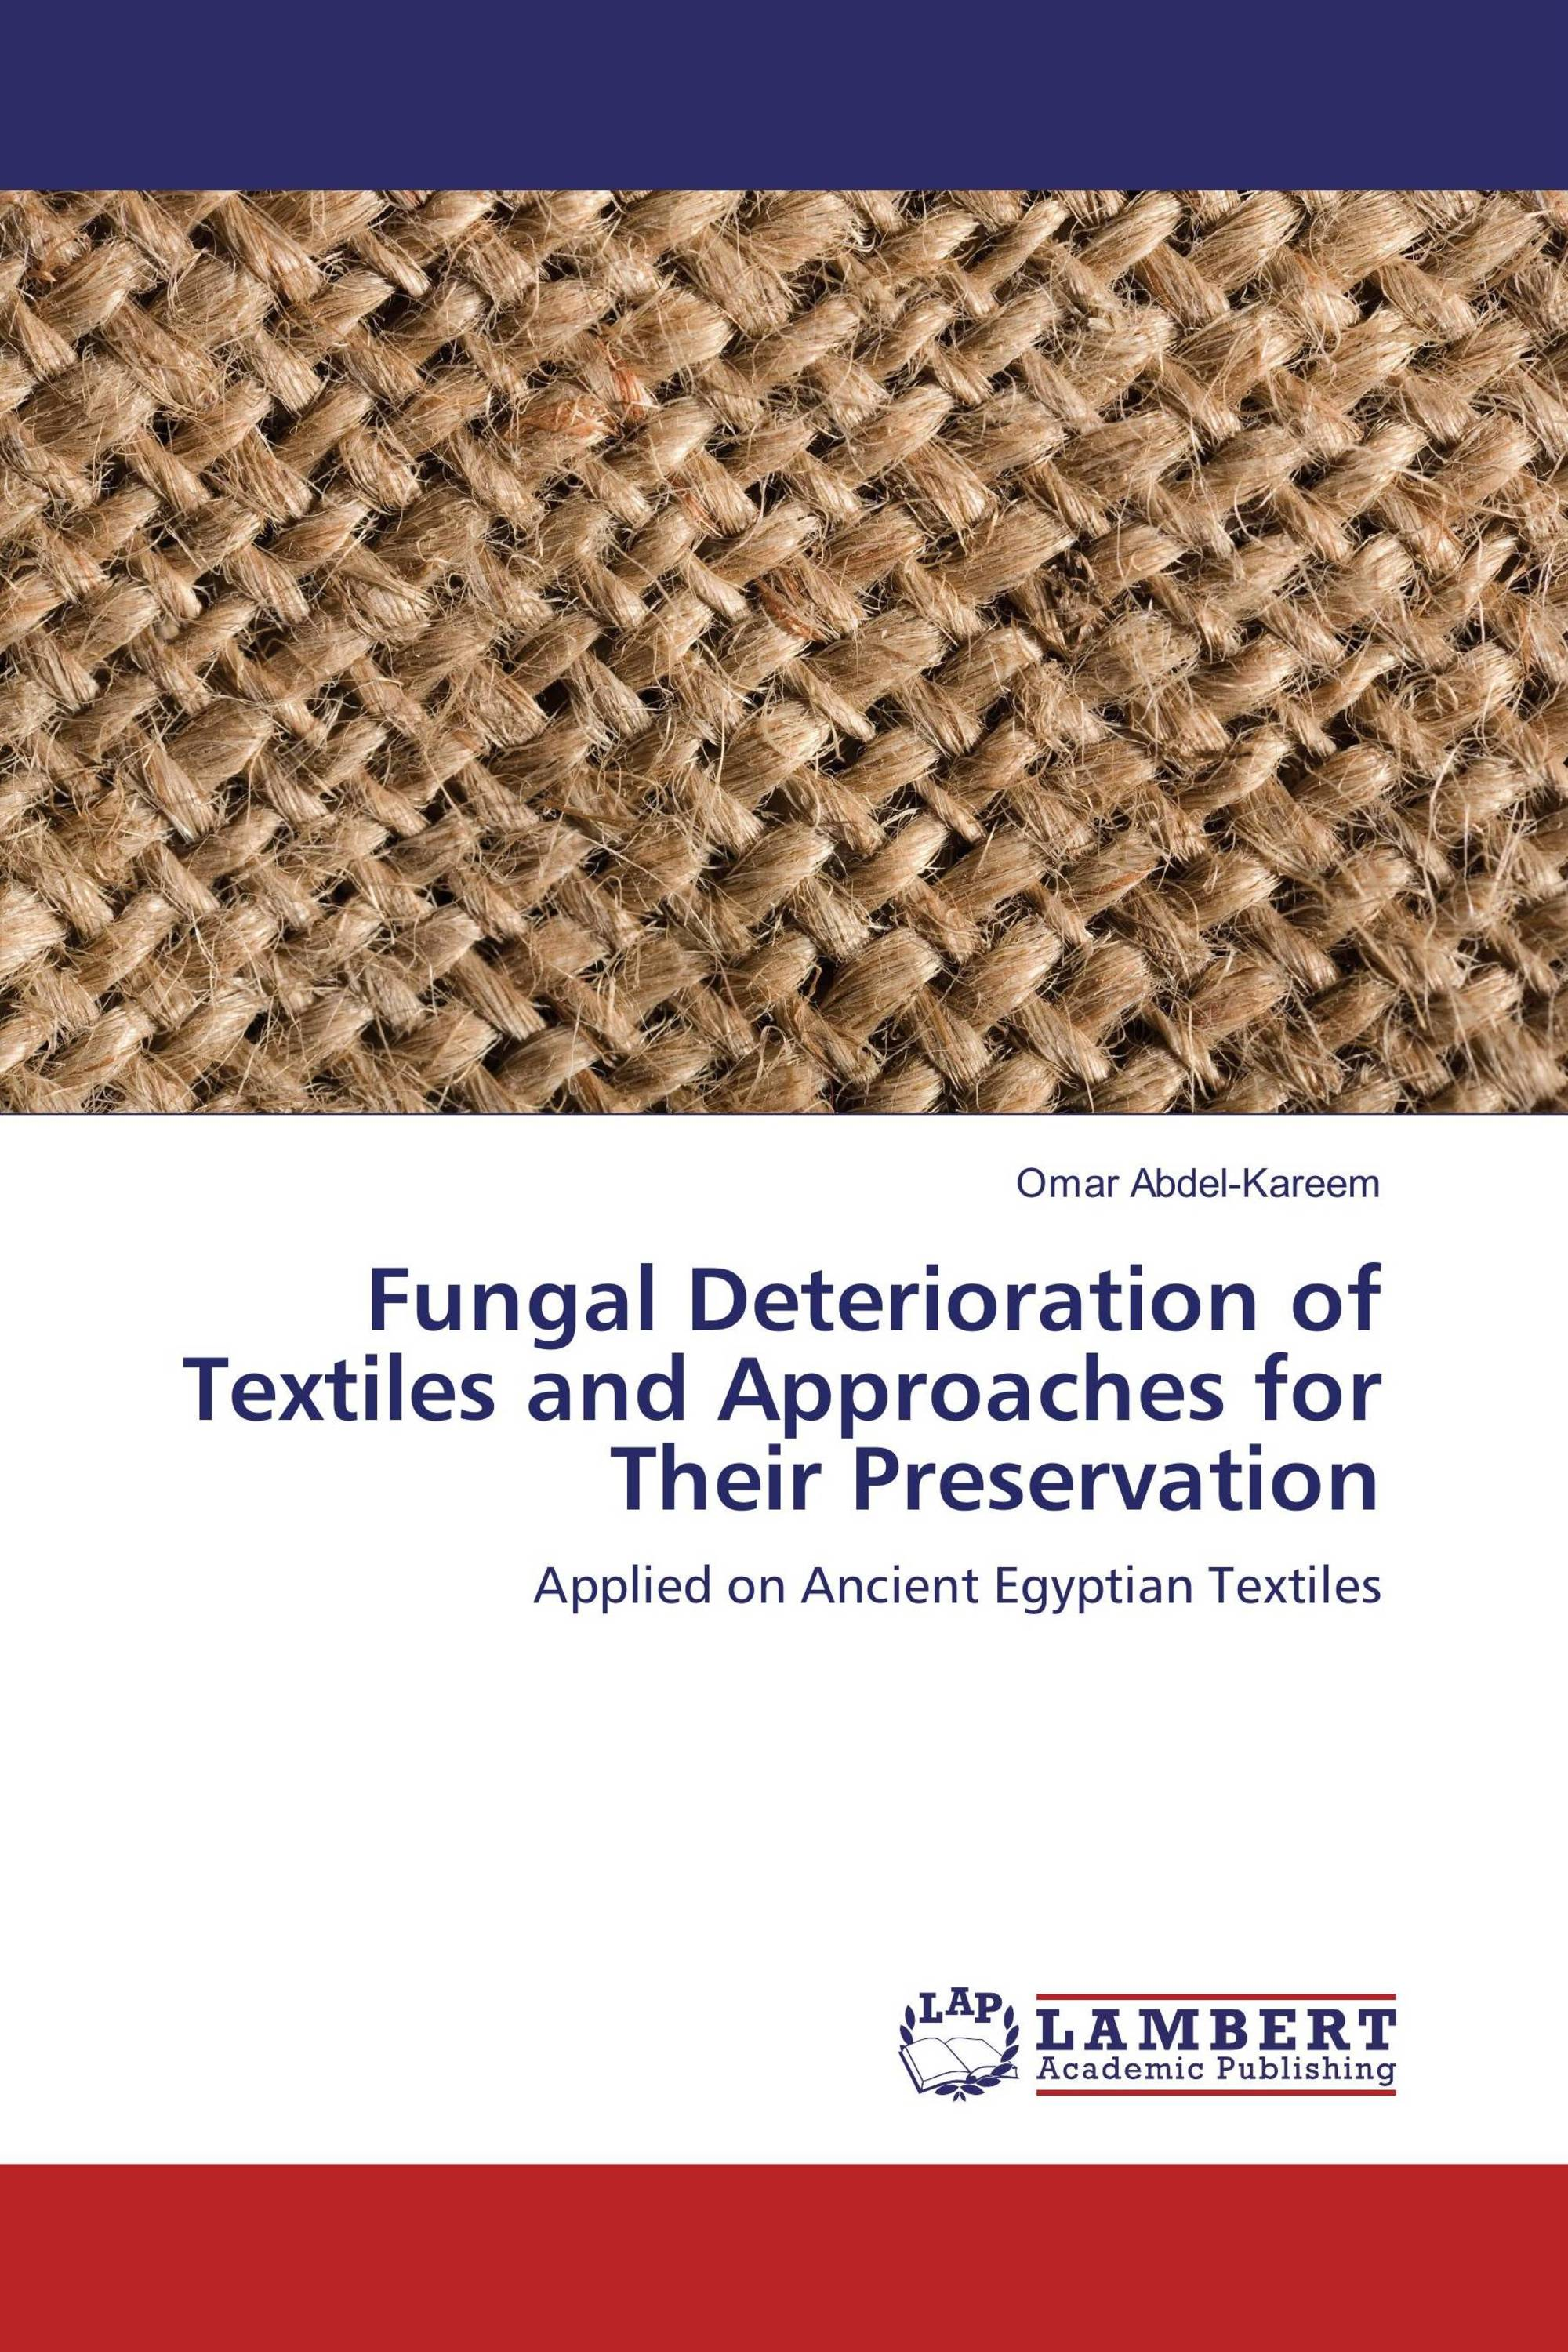 Fungal Deterioration of Textiles and Approaches for Their